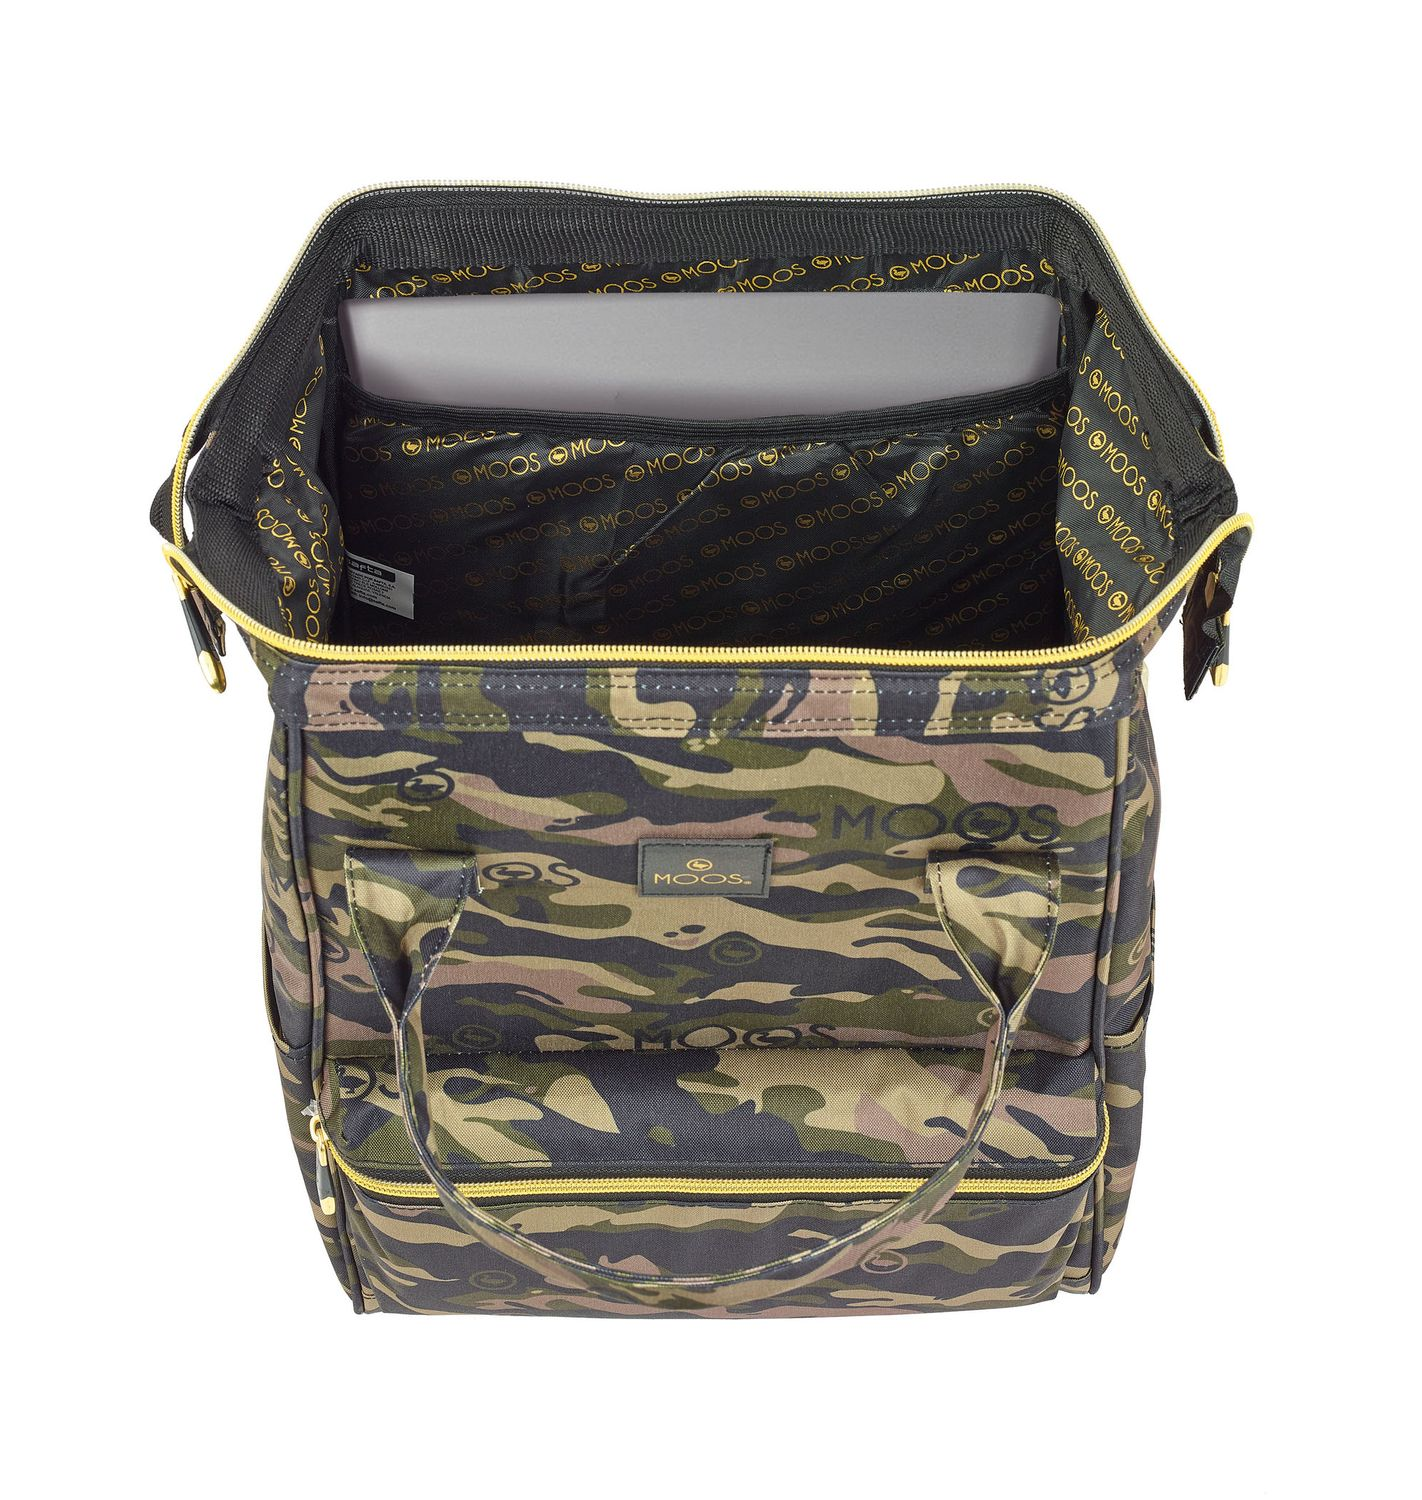 "Backpack with handles for laptop 13"" 40 cm MOSS Camouflage – image 2"